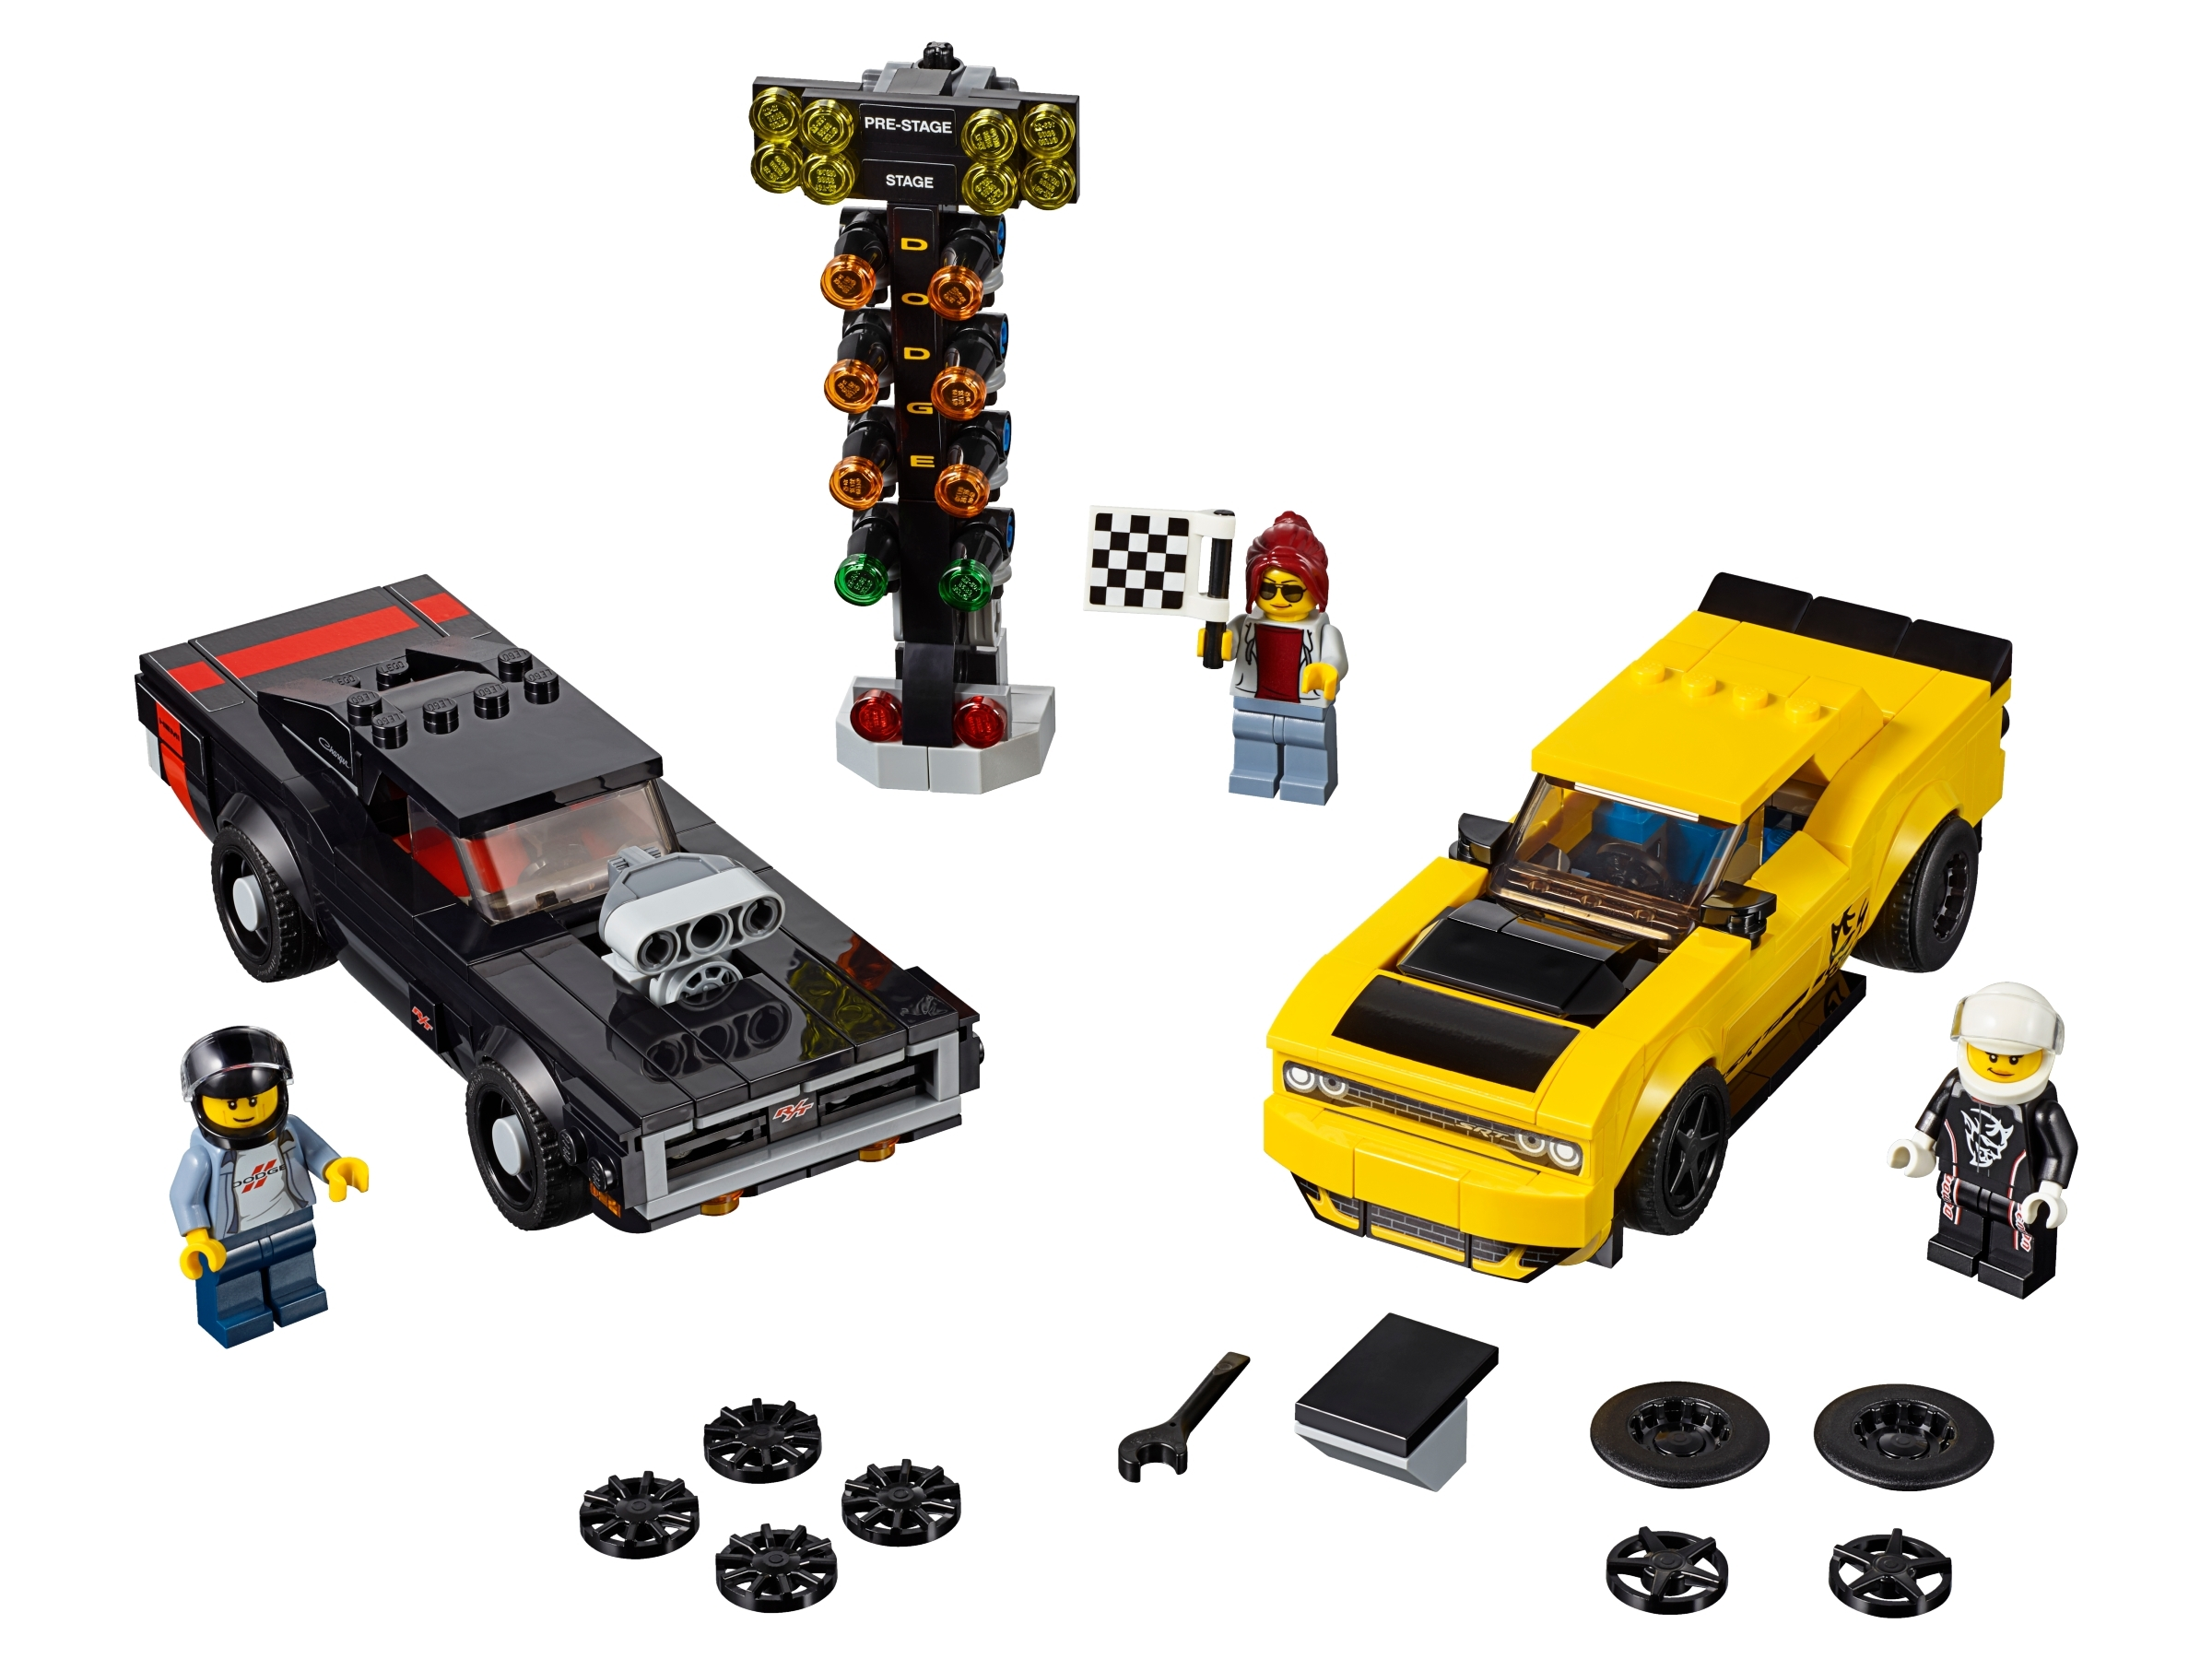 2018 Dodge Challenger Srt Demon And 1970 Dodge Charger R T 75893 Speed Champions Buy Online At The Official Lego Shop Us